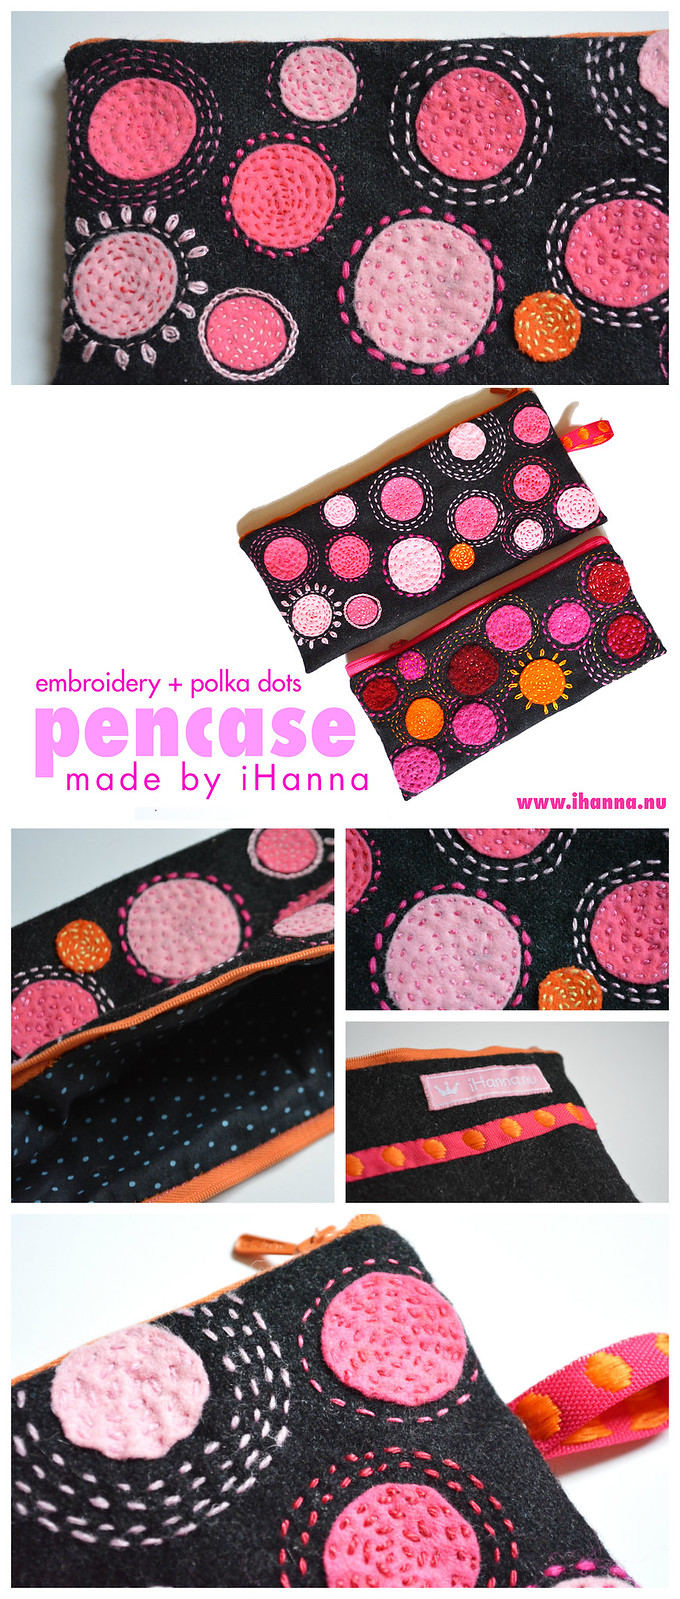 Polka dot wool embroidery by iHanna #pencase